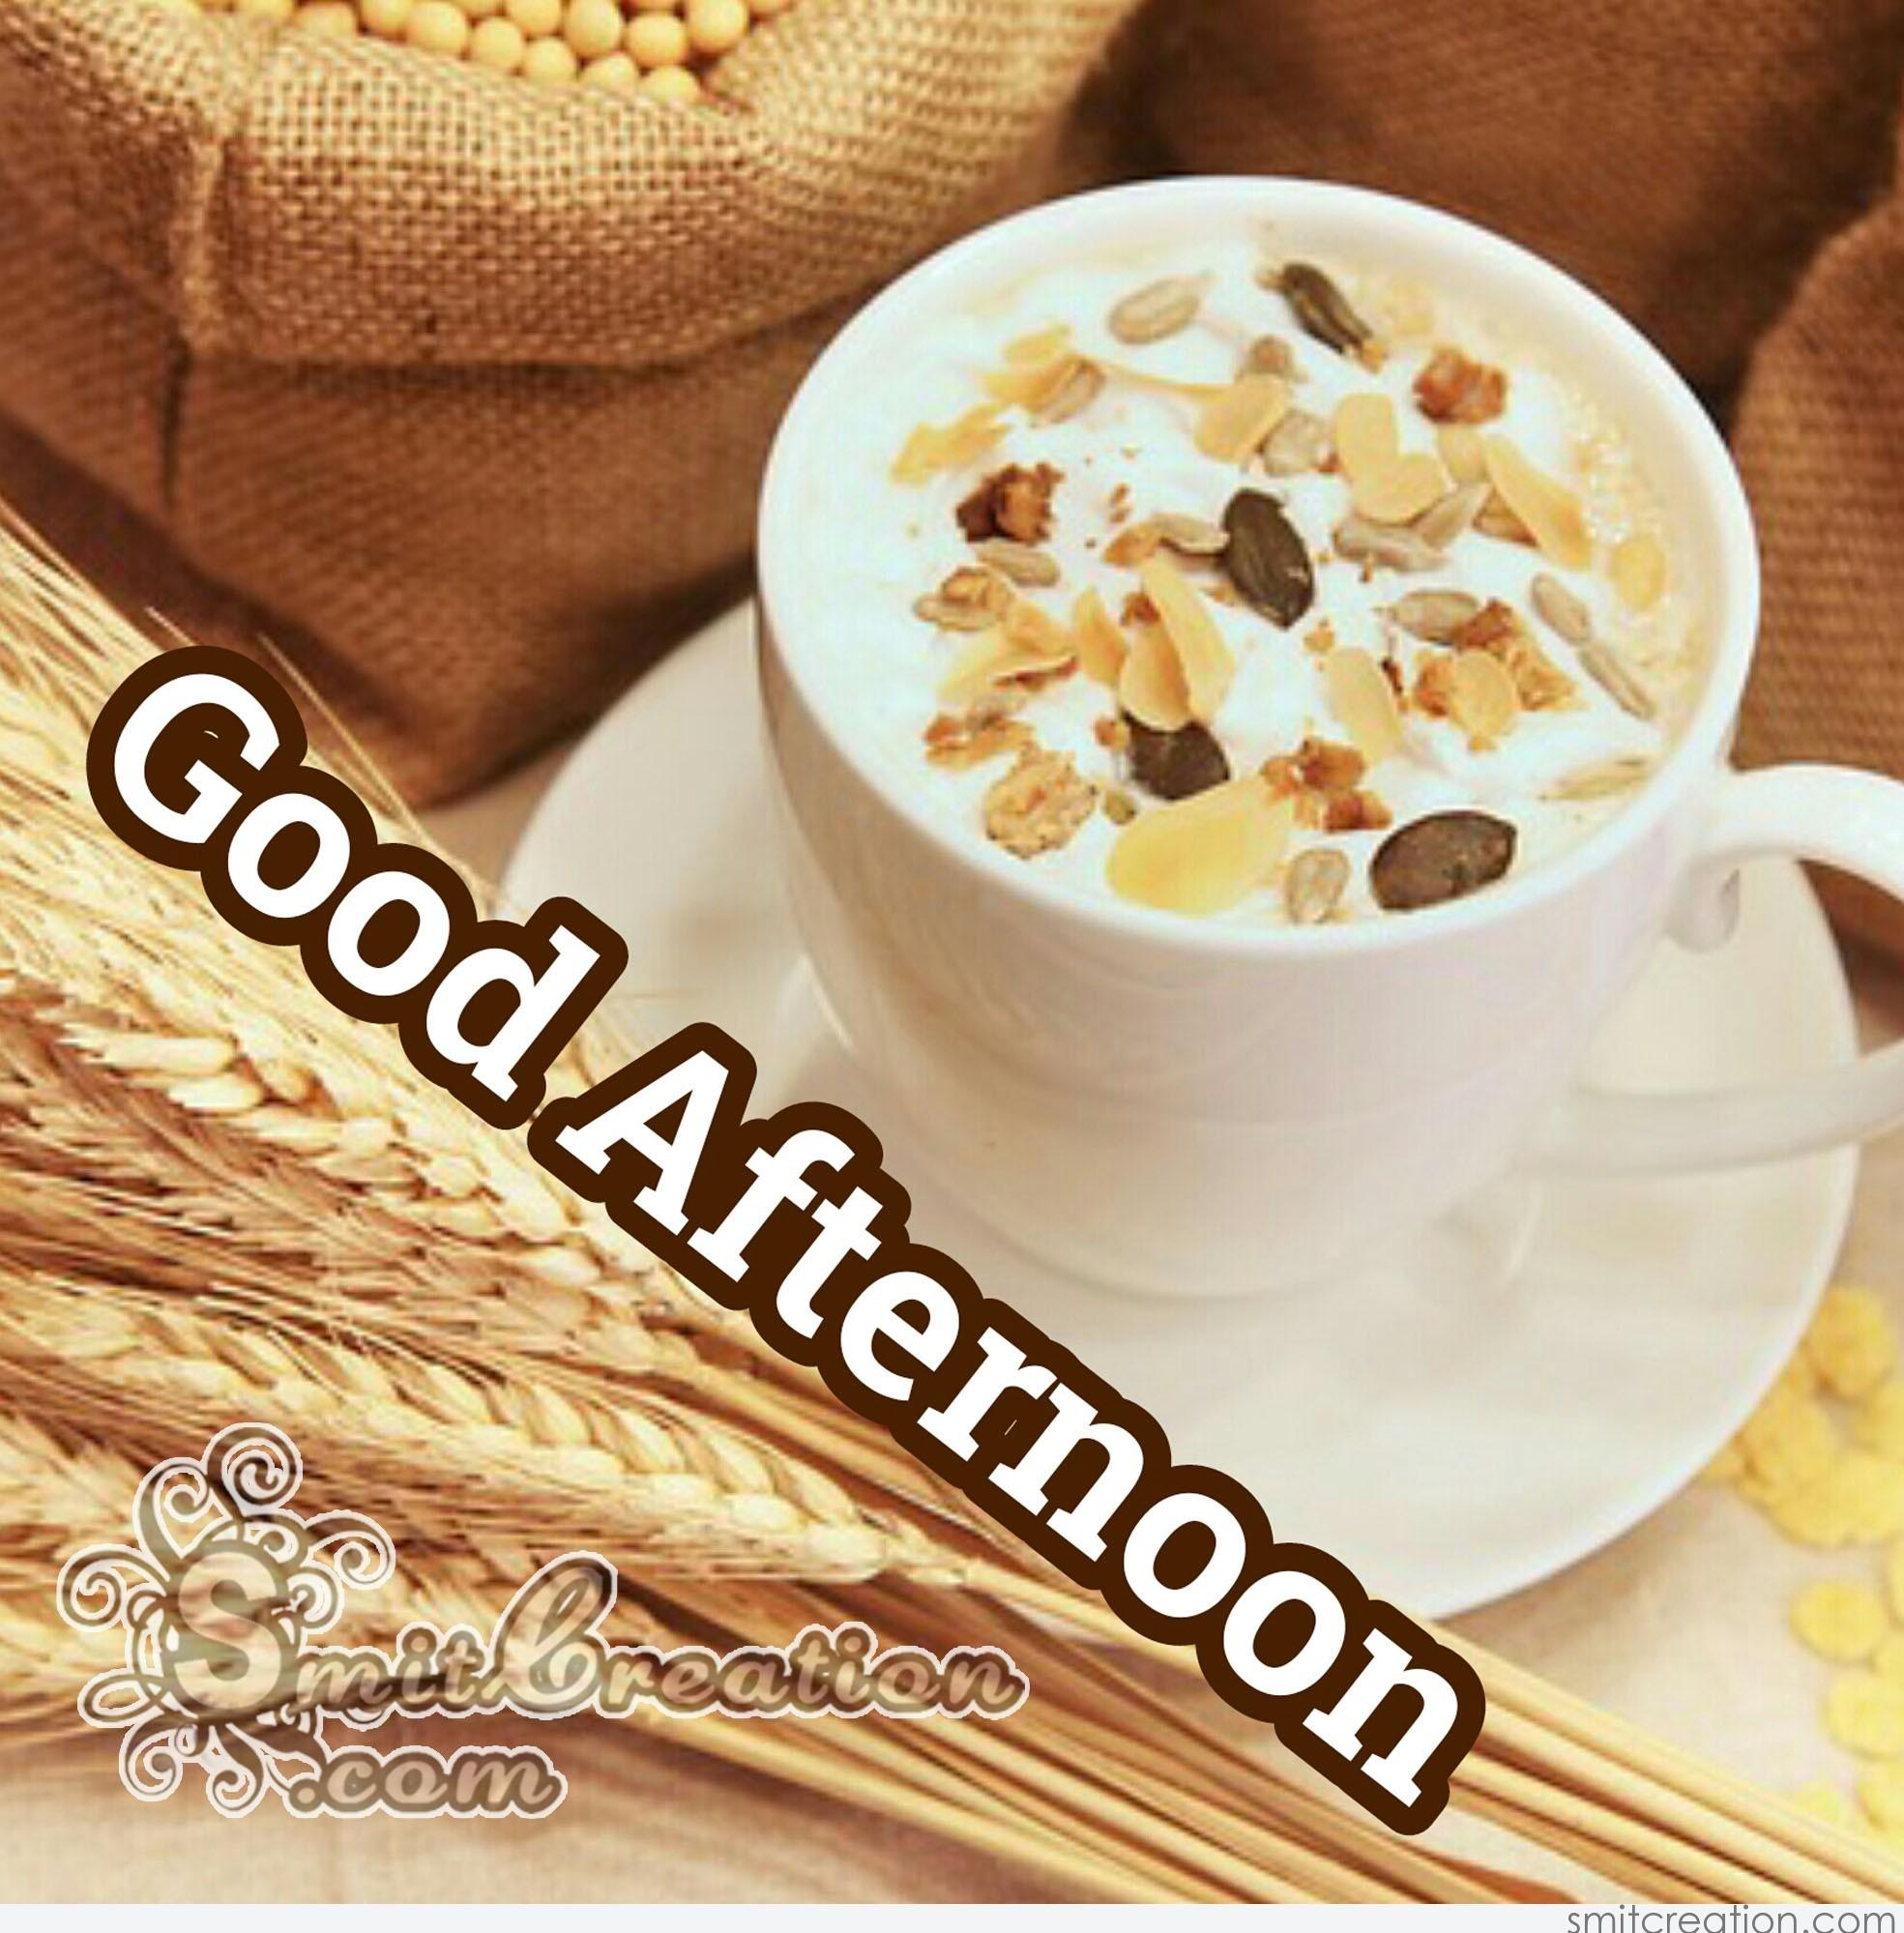 Good Afternoon Snacks Pictures And Graphics Smitcreation